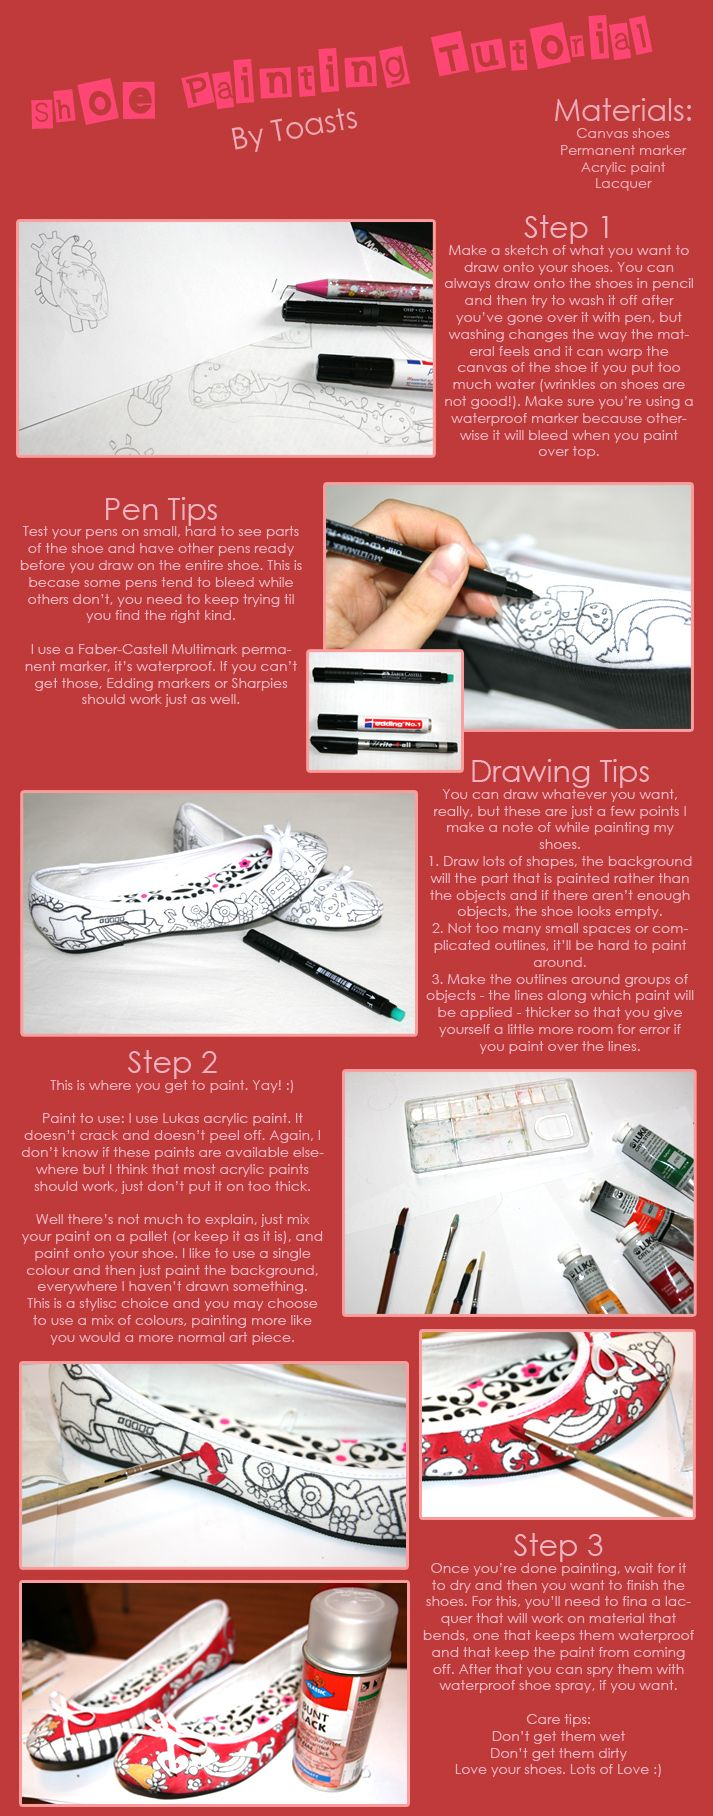 A useful tutorial for painting shoes, although I just use Sharpies. Be sure to use waterproofing spray so the colors don't bleed.